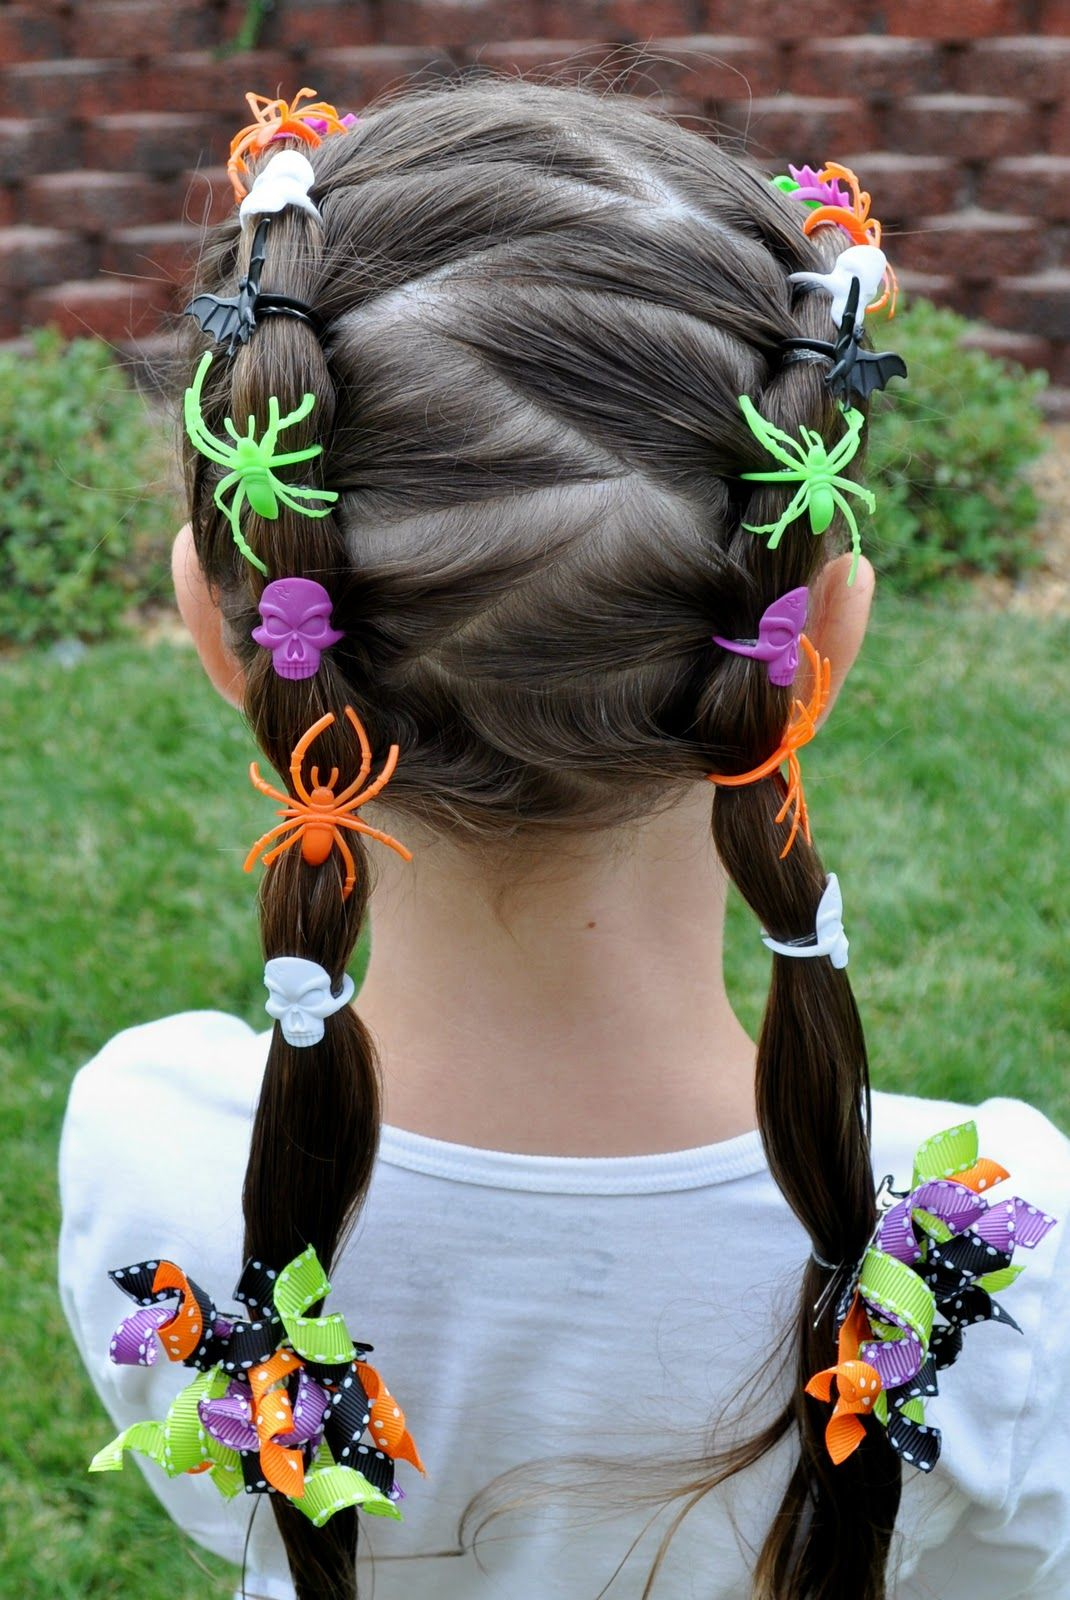 Halloween Costume Ideas For Girls With Short Hair.Oooh I Know Some Little Girls Whose Hair Would Look Fabulous Like